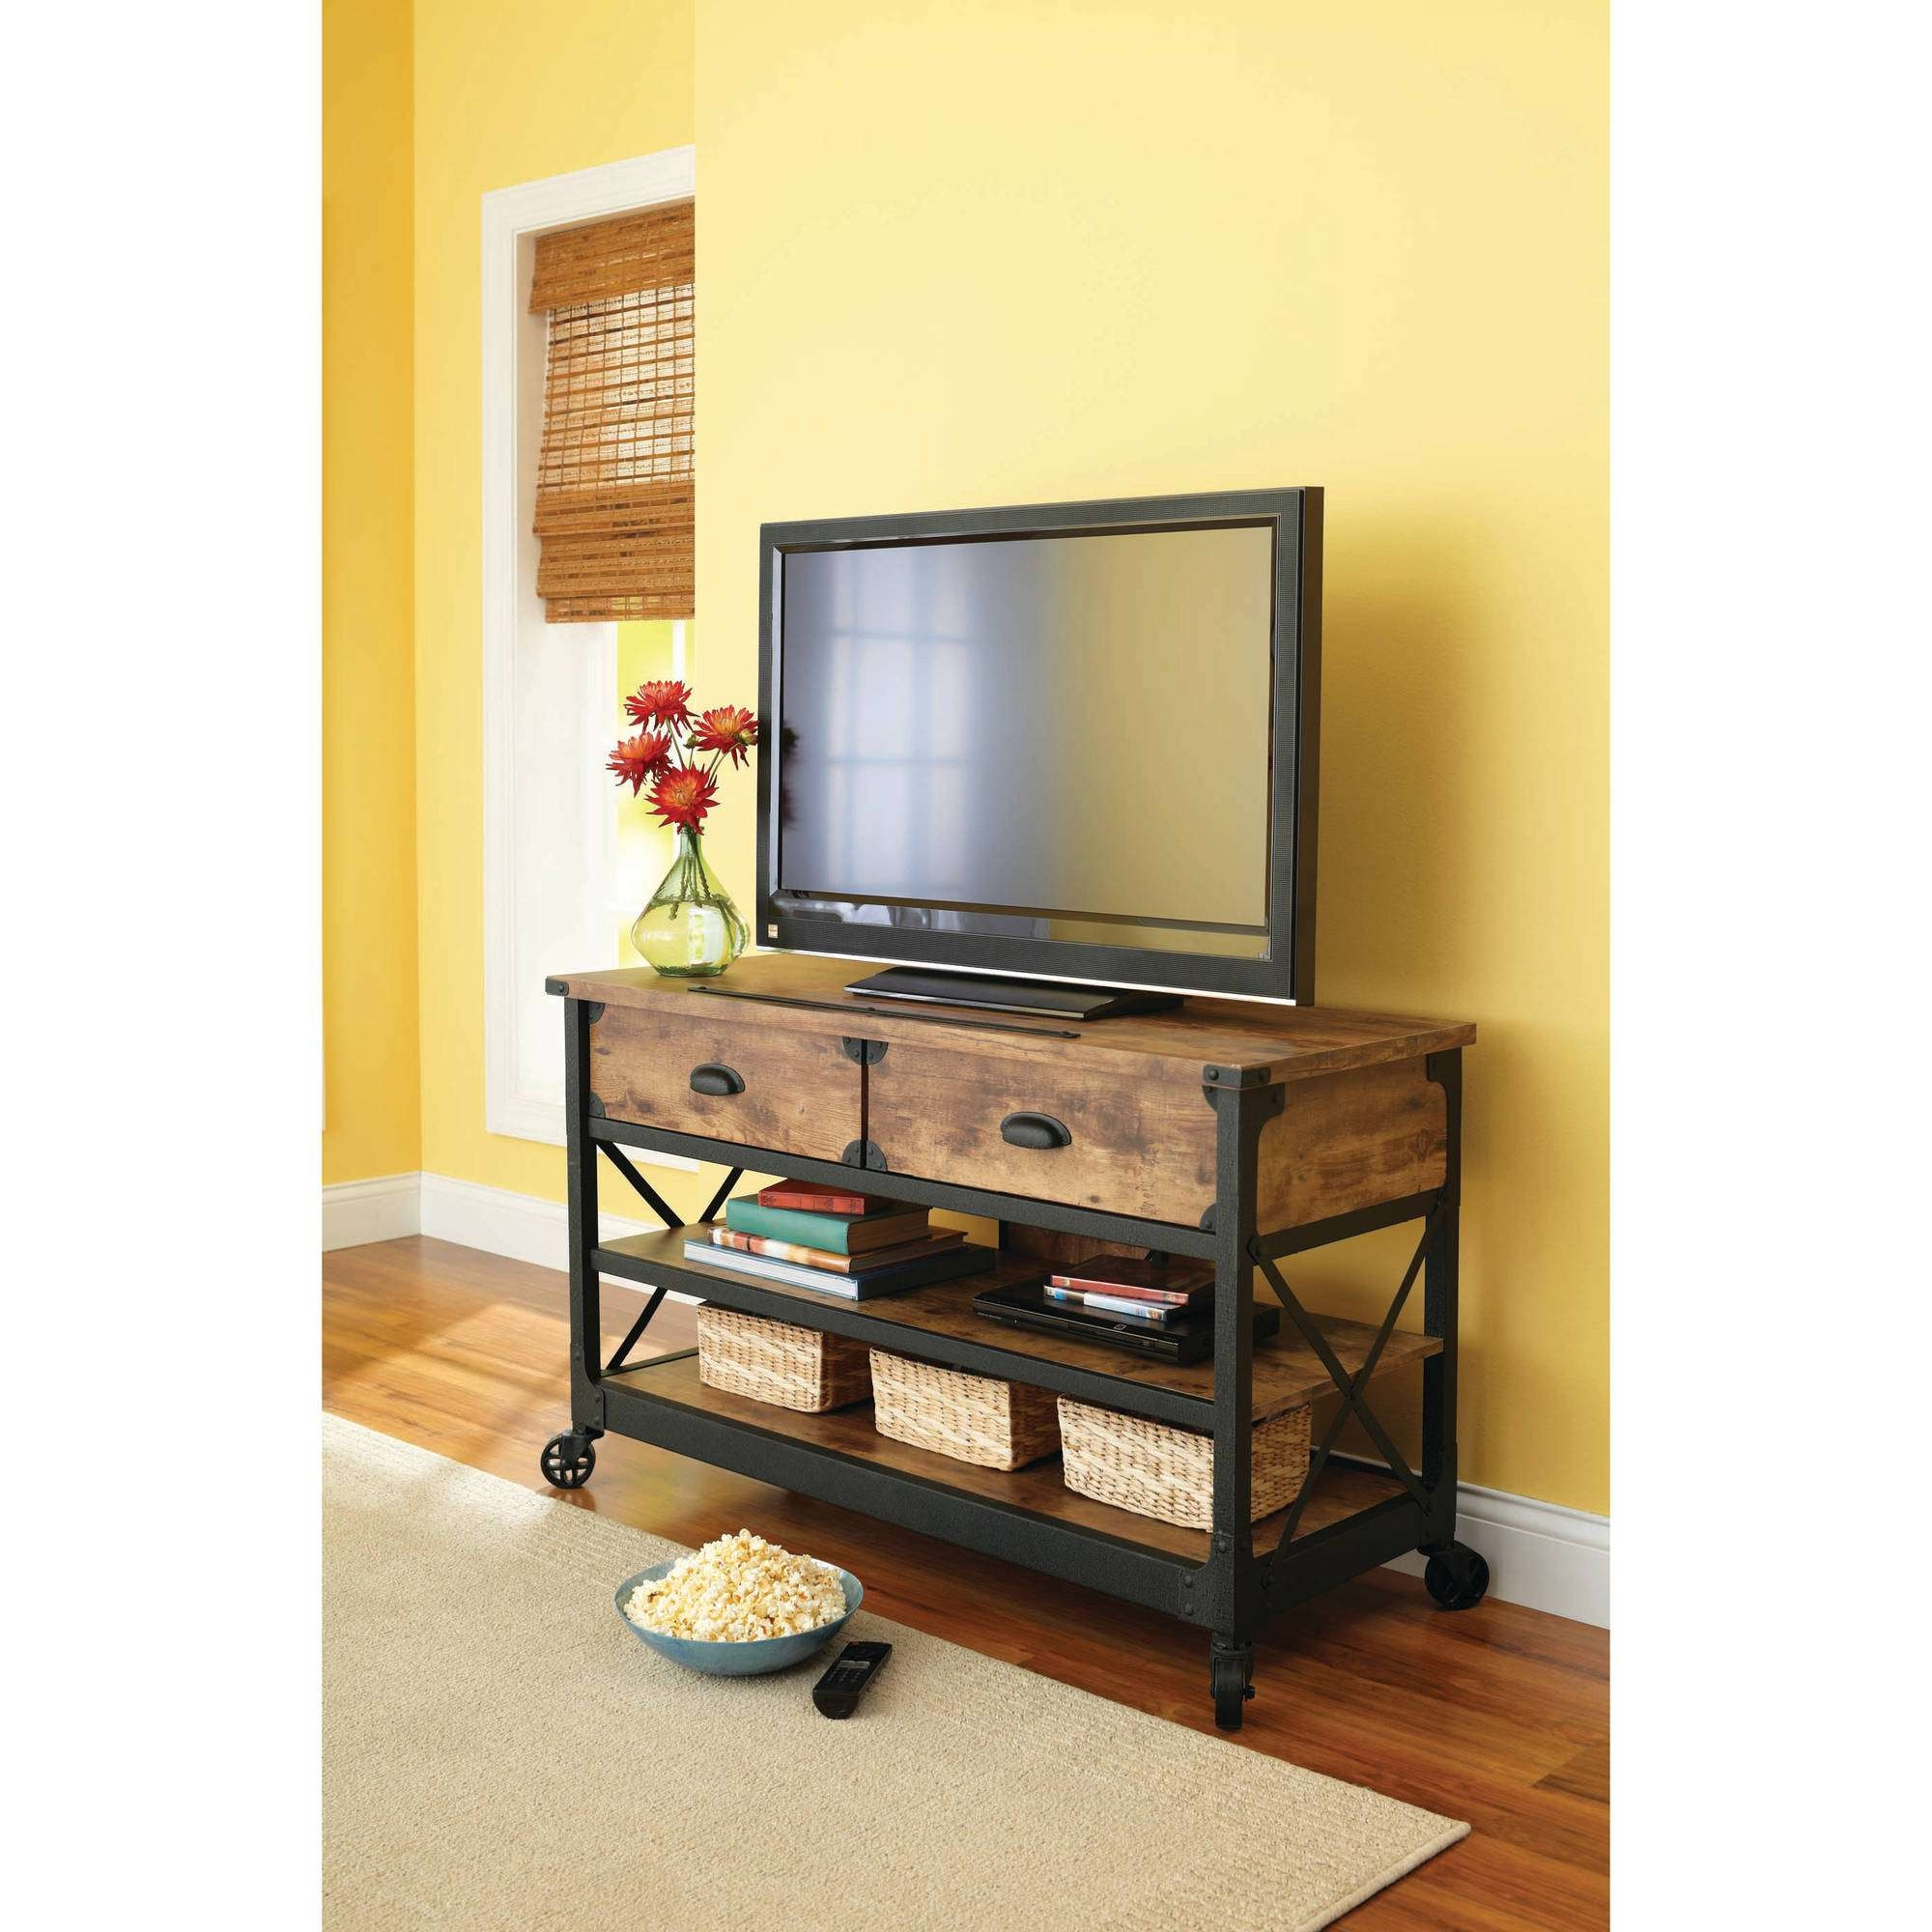 Better Homes And Gardens Rustic Country Antiqued Black/pine Panel Regarding Corner Tv Stands With Drawers (View 1 of 15)